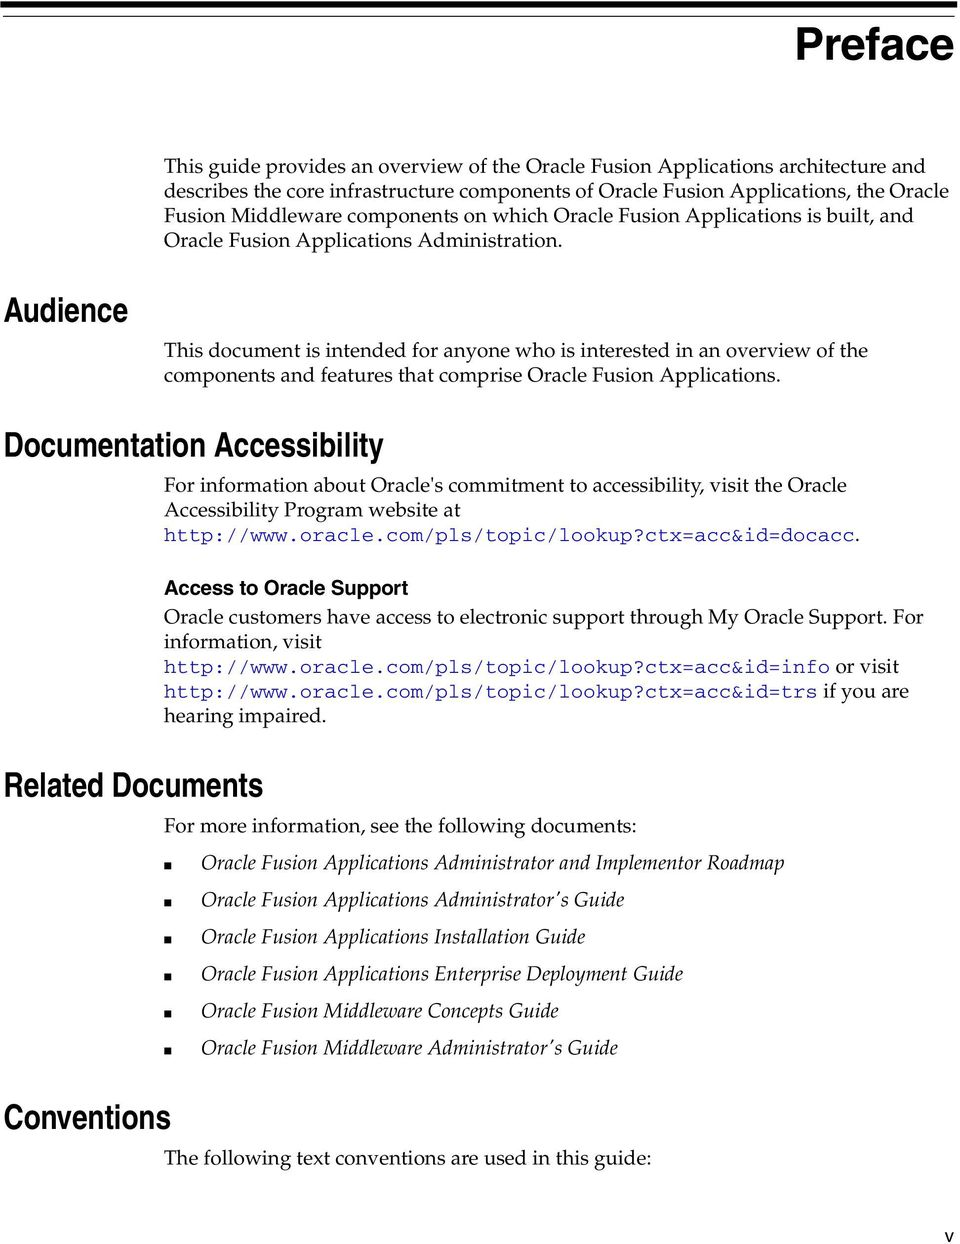 Audience This document is intended for anyone who is interested in an overview of the components and features that comprise Oracle Fusion Applications.